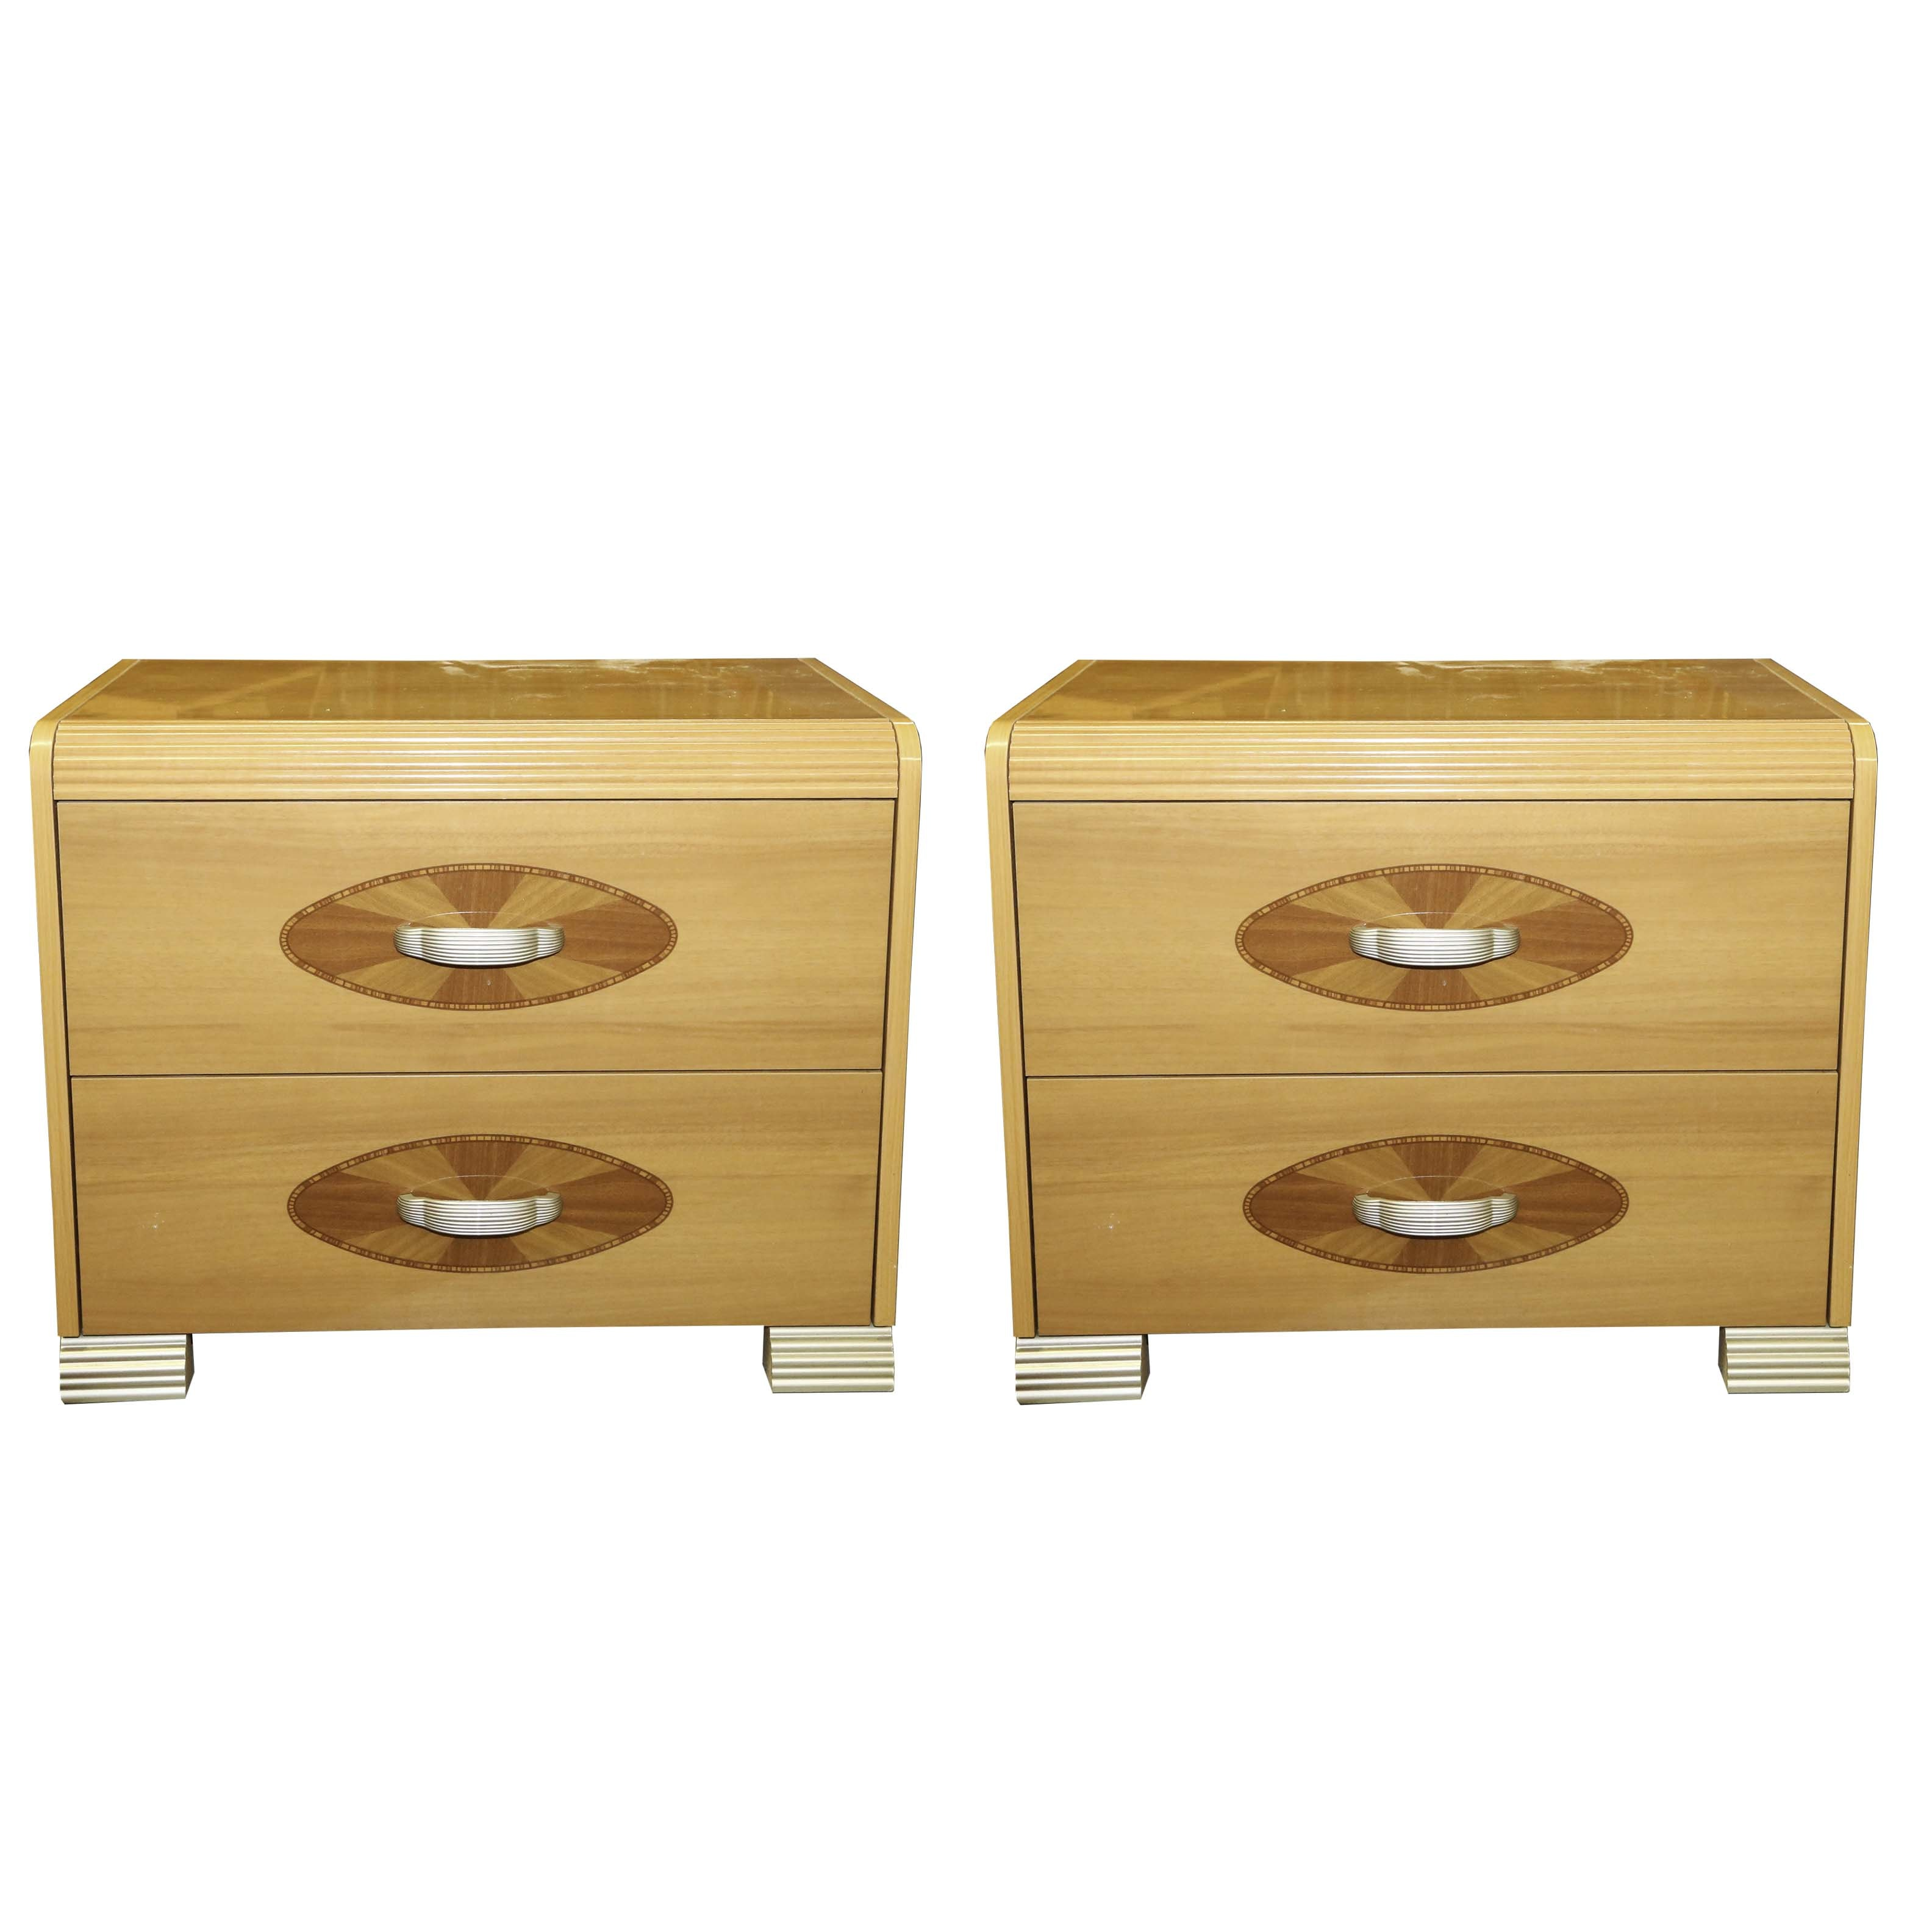 Art Deco Style Bedside Chests by Friul Cassetti